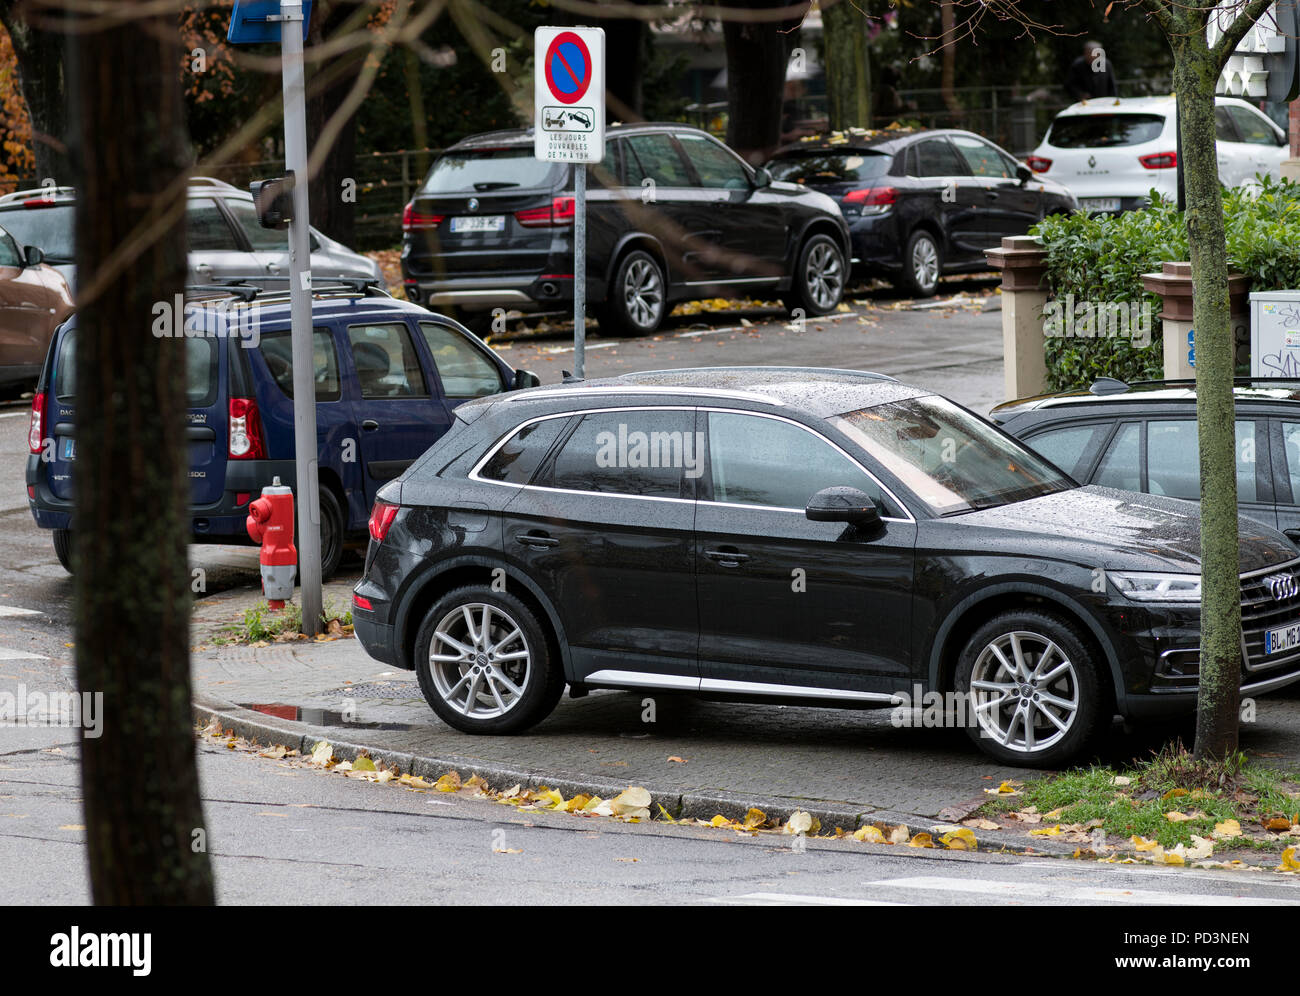 Car parked on pavement, Strasbourg, Alsace, France, Europe, - Stock Image